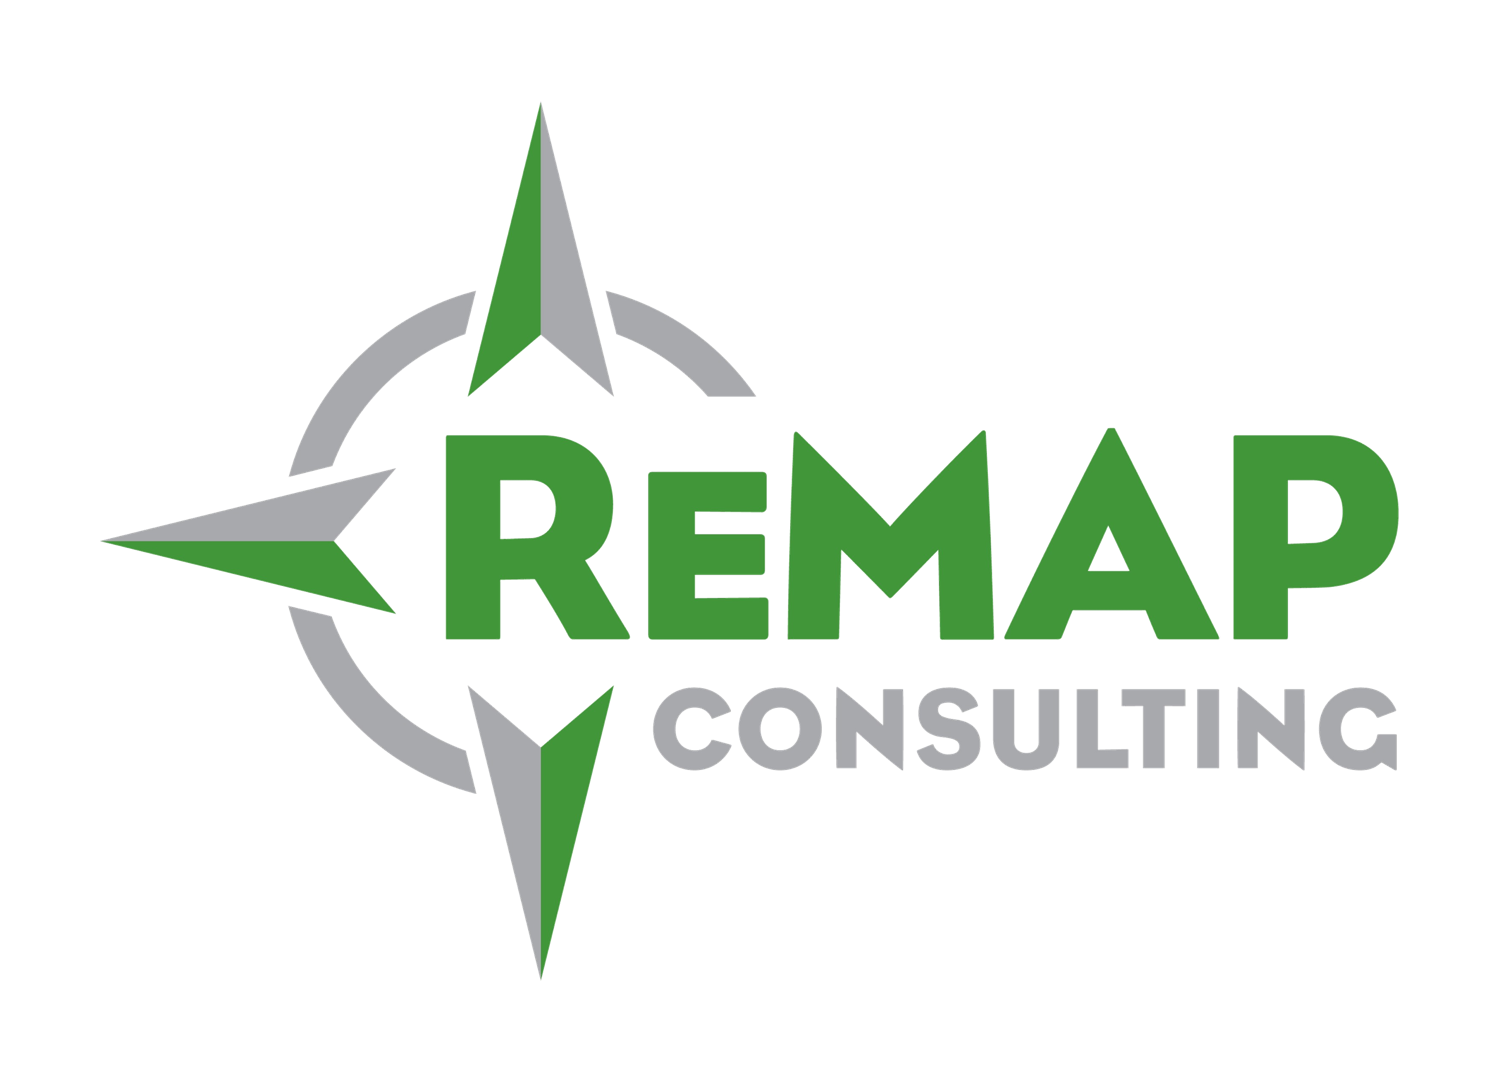 Remap consulting.png